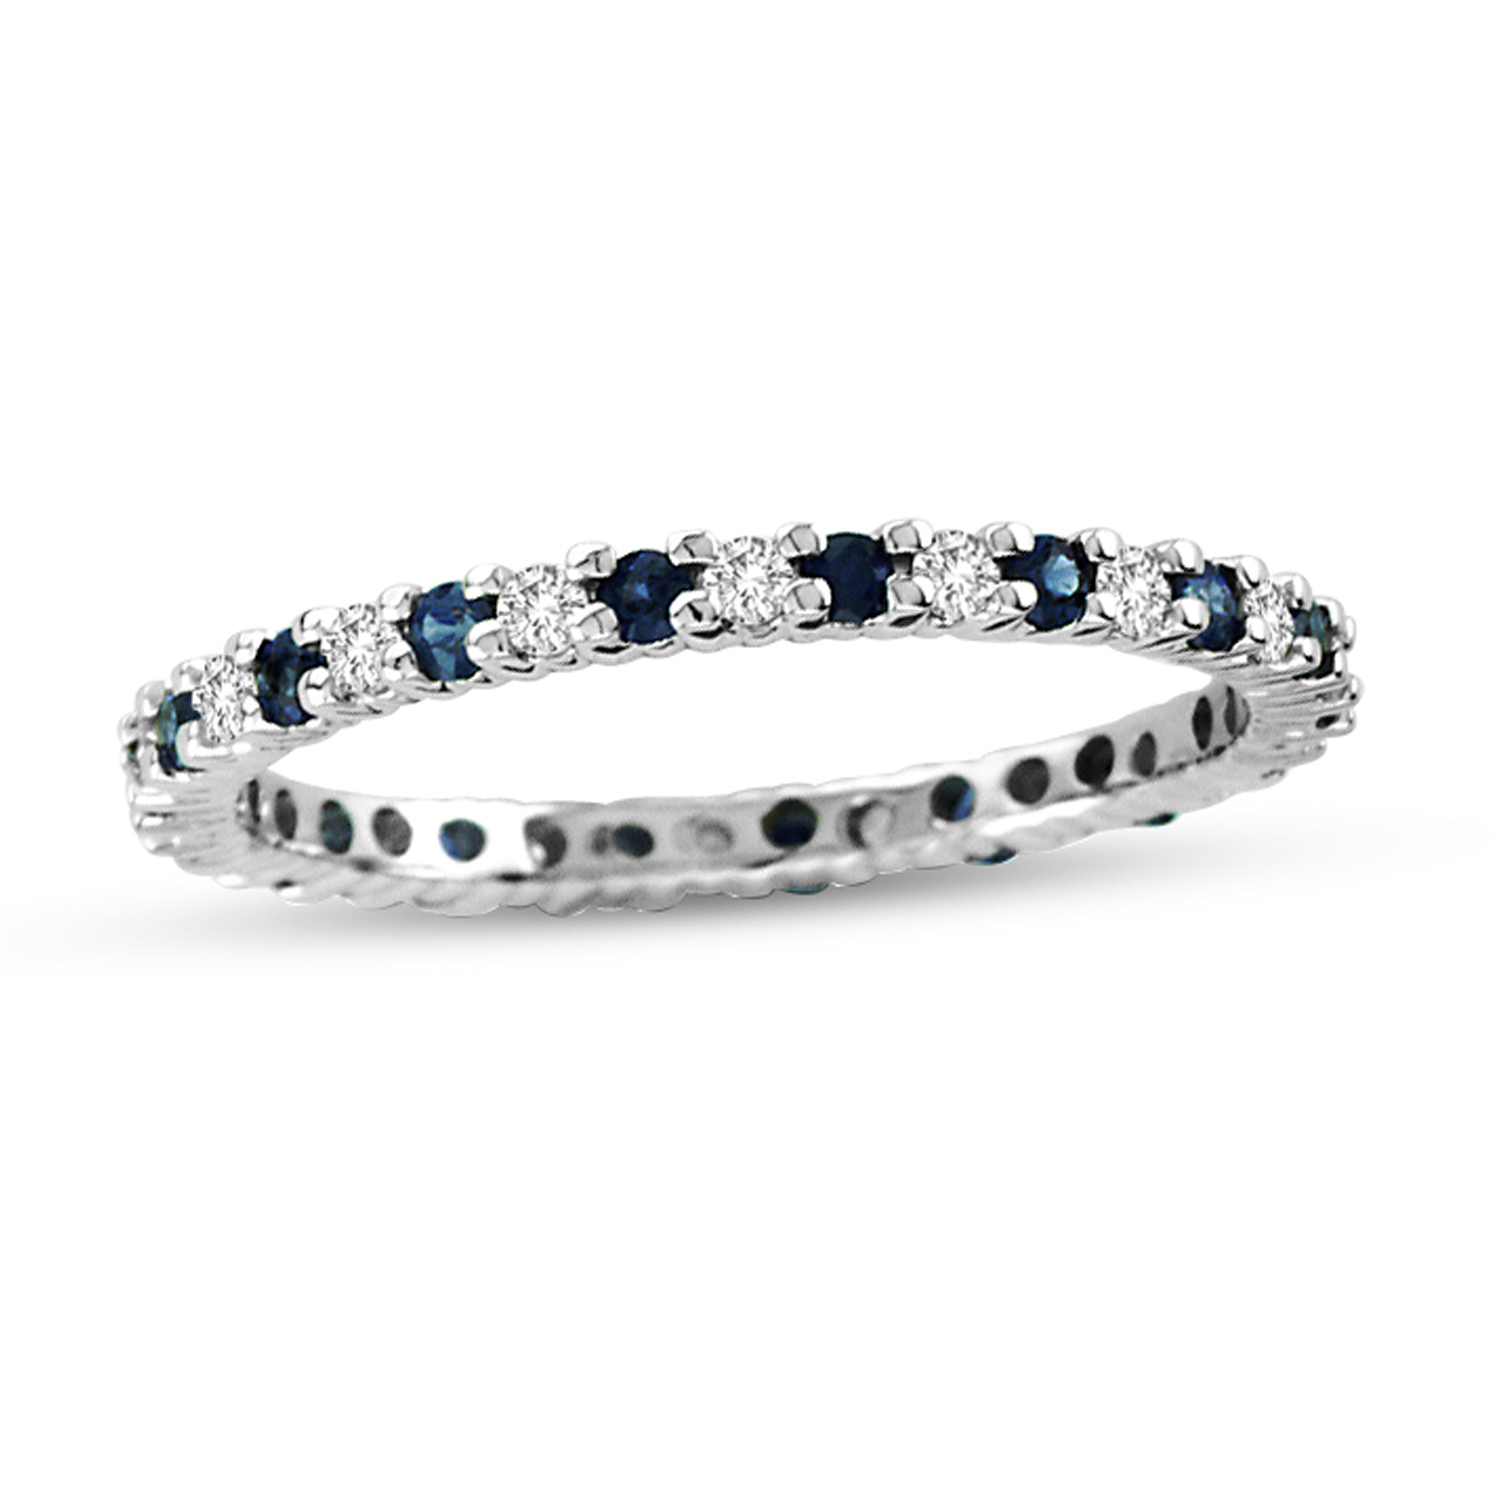 View 0.55cttw Sapphire and Diamond Eternity Ring in 14k Gold